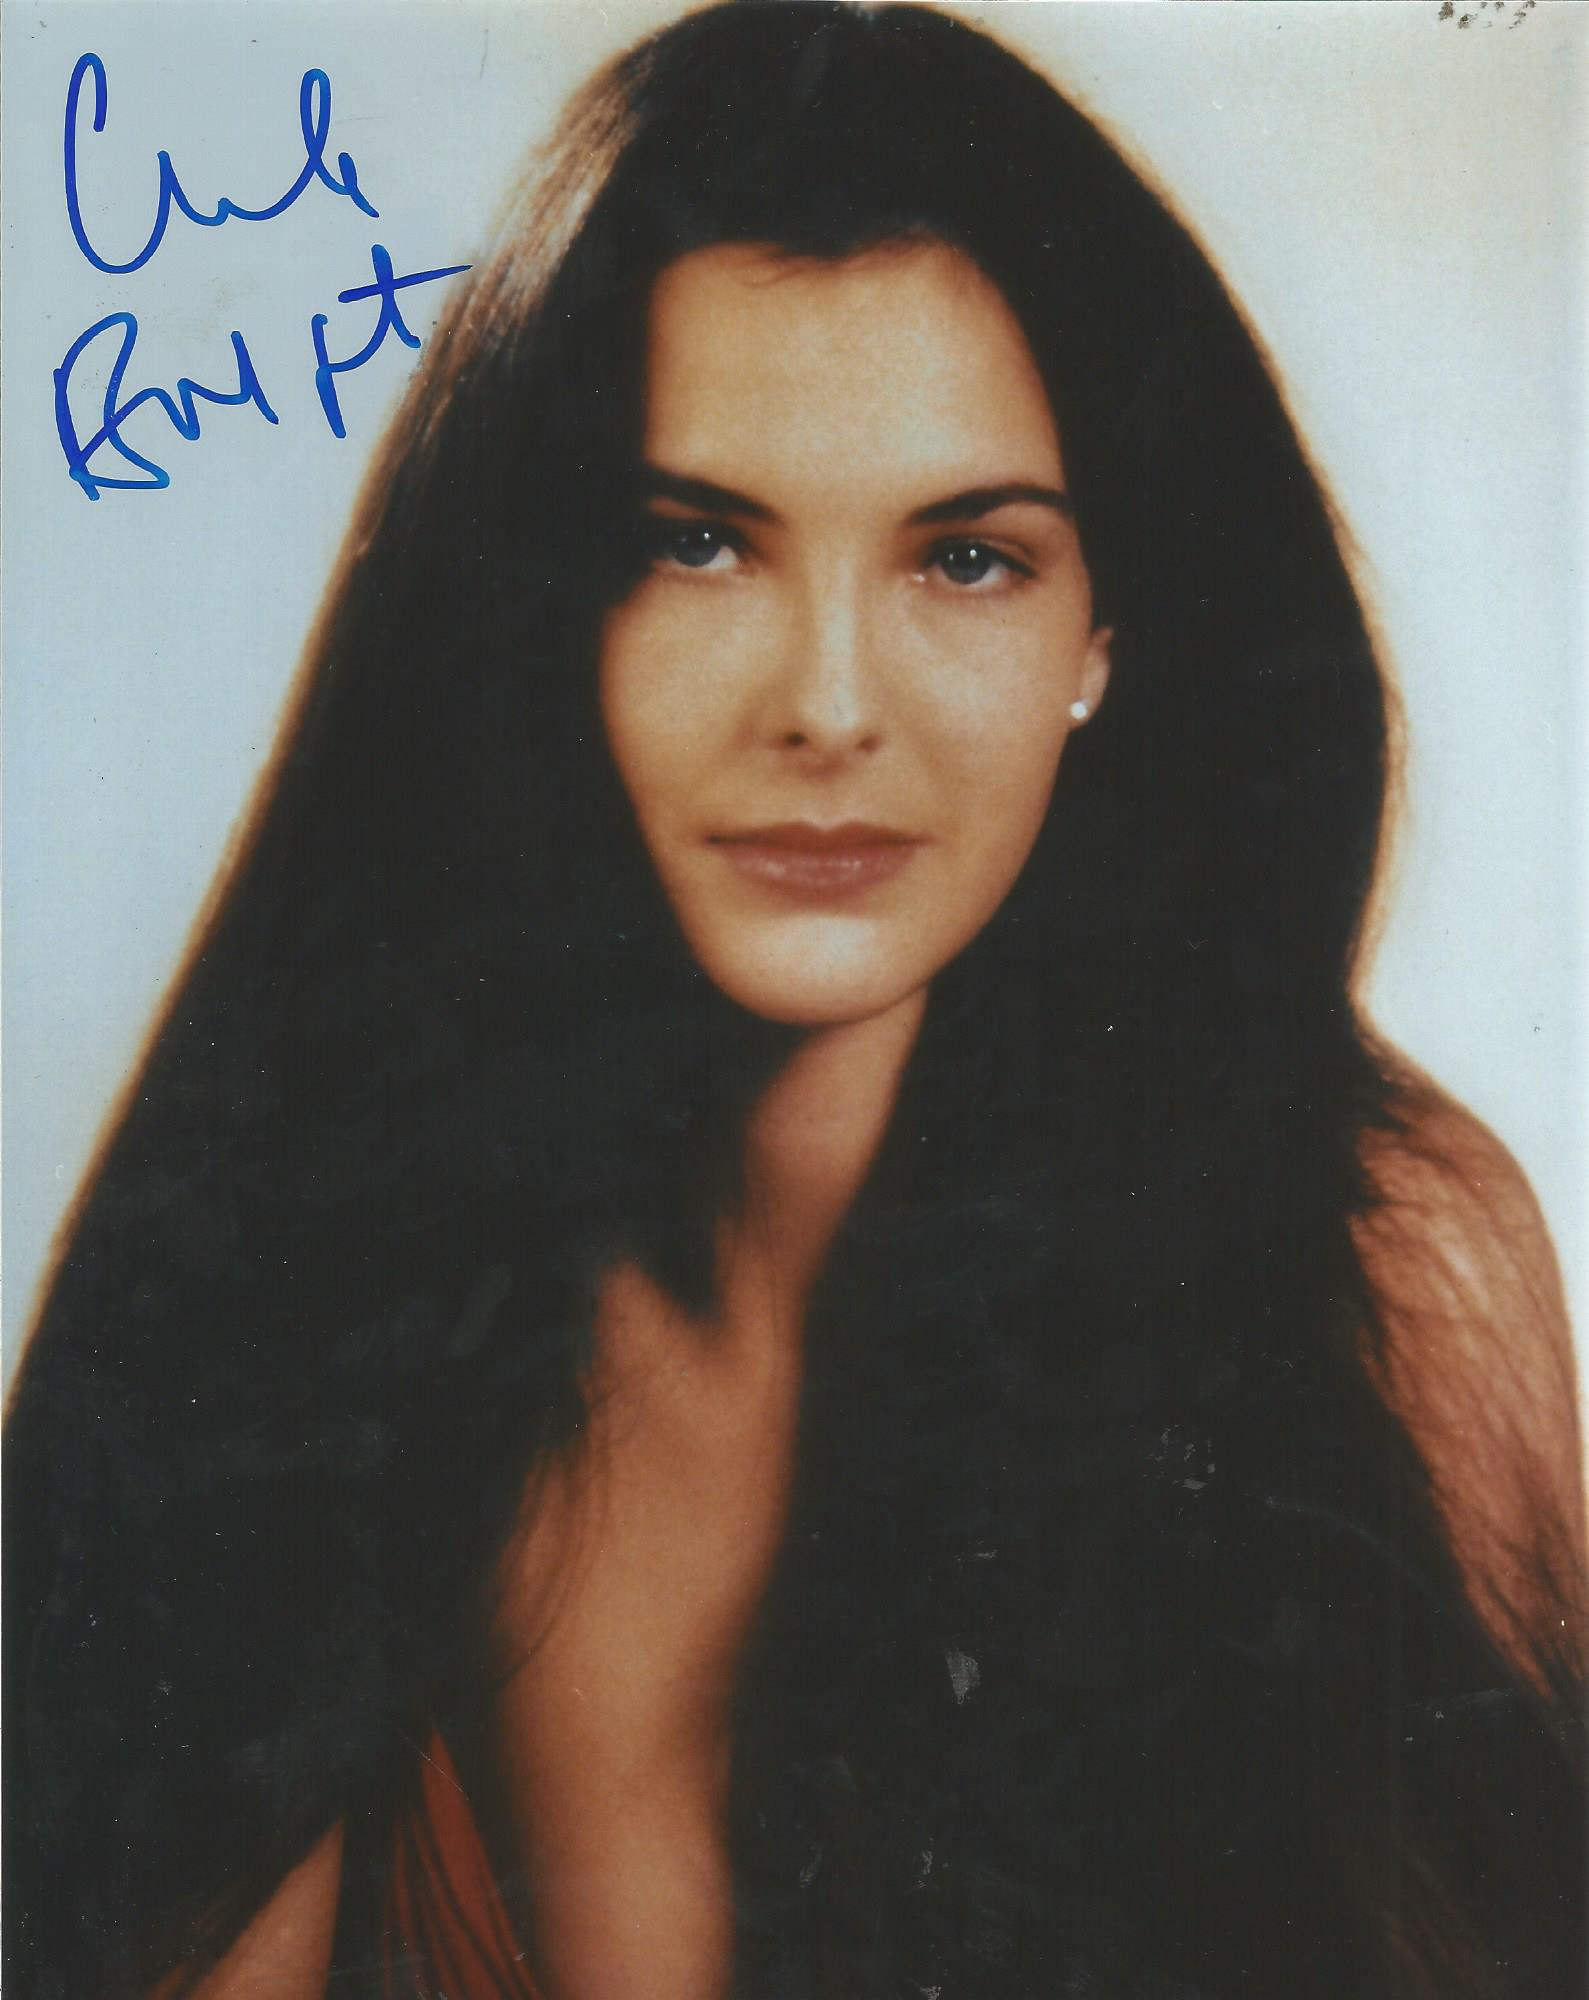 Lot 75 - Carole Bouquet signed 10x8 colour photo. Good Condition. All signed pieces come with a Certificate